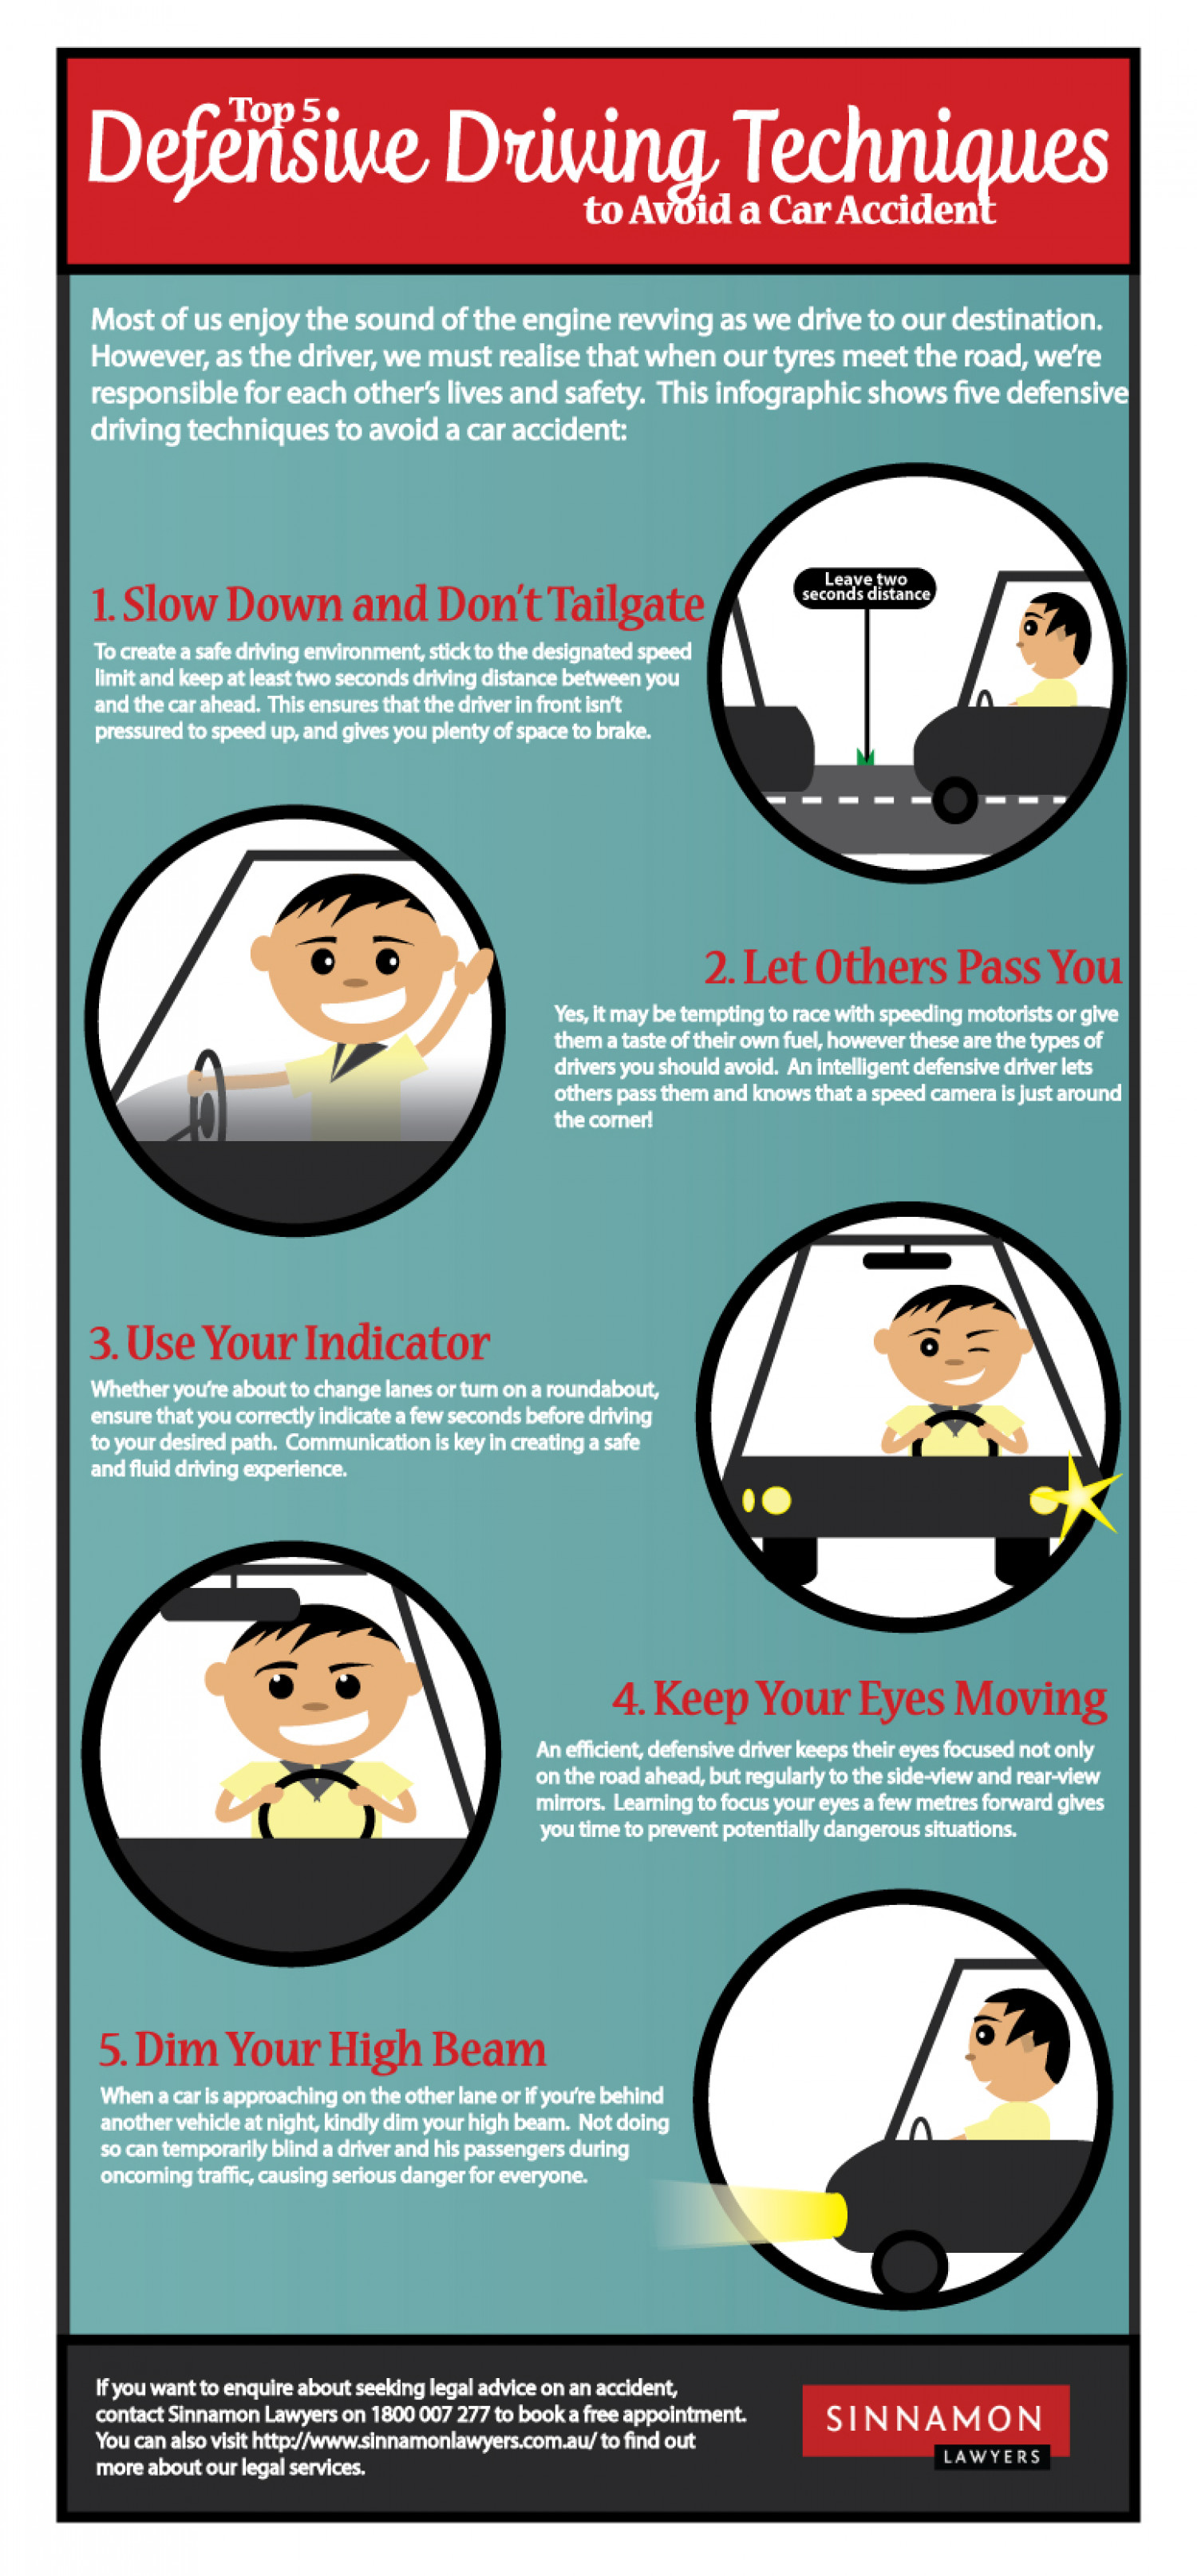 Top 5 Defensive Driving Techniques to Avoid a Car Accident  Infographic